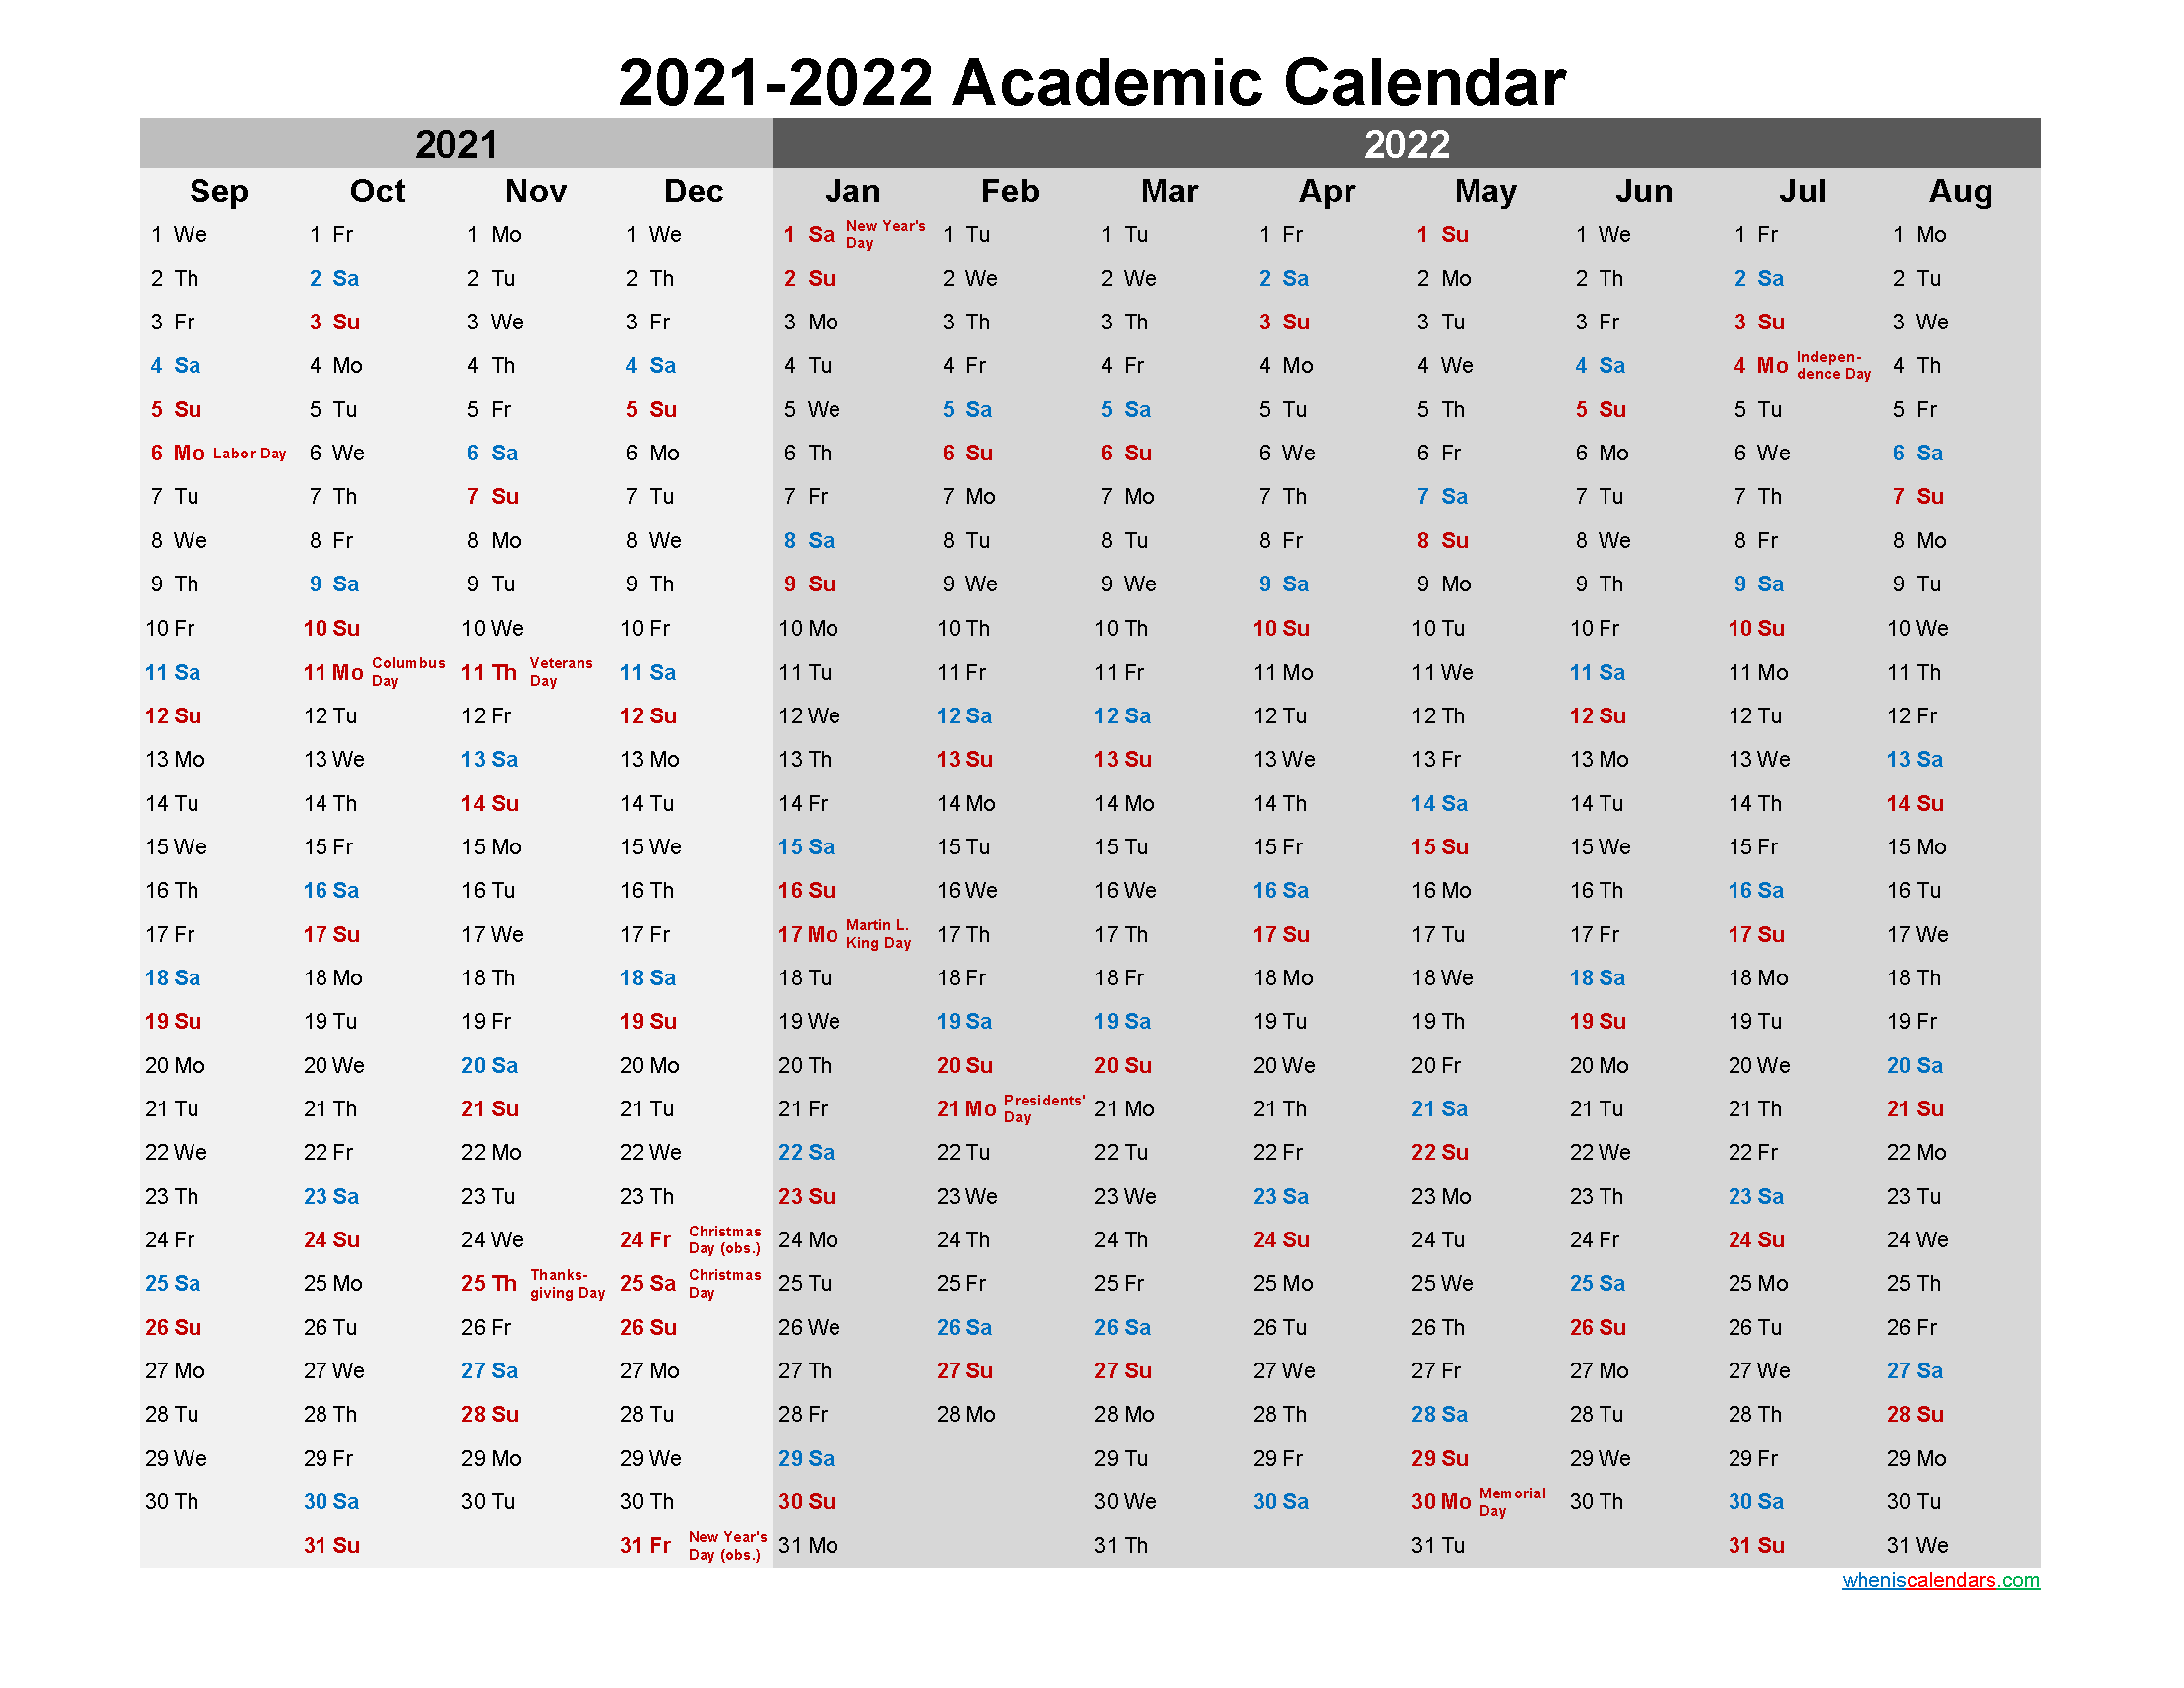 Academic Calendar 2021 and 2022 Printable